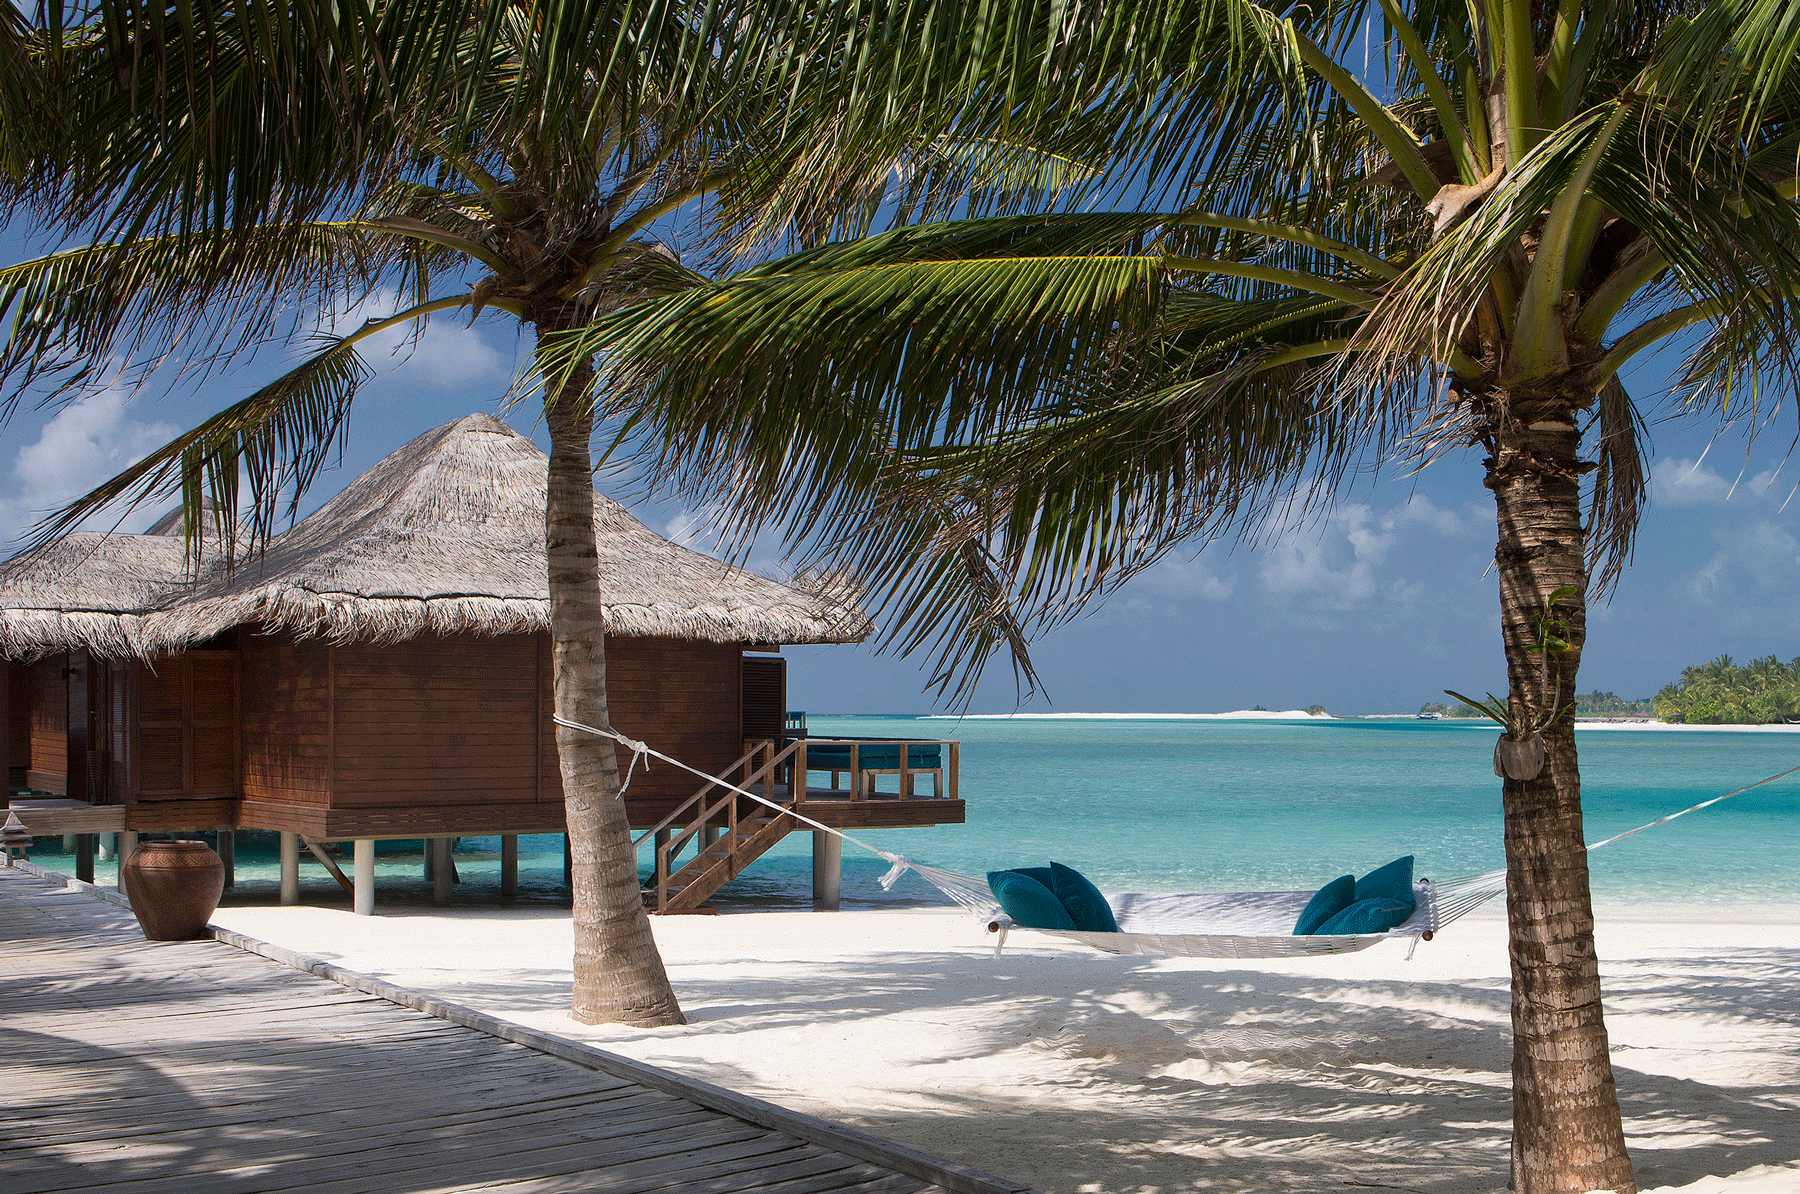 61912005-H1-Boardwalk_from_beach_to_Over_Water_Bungalows-copy.png